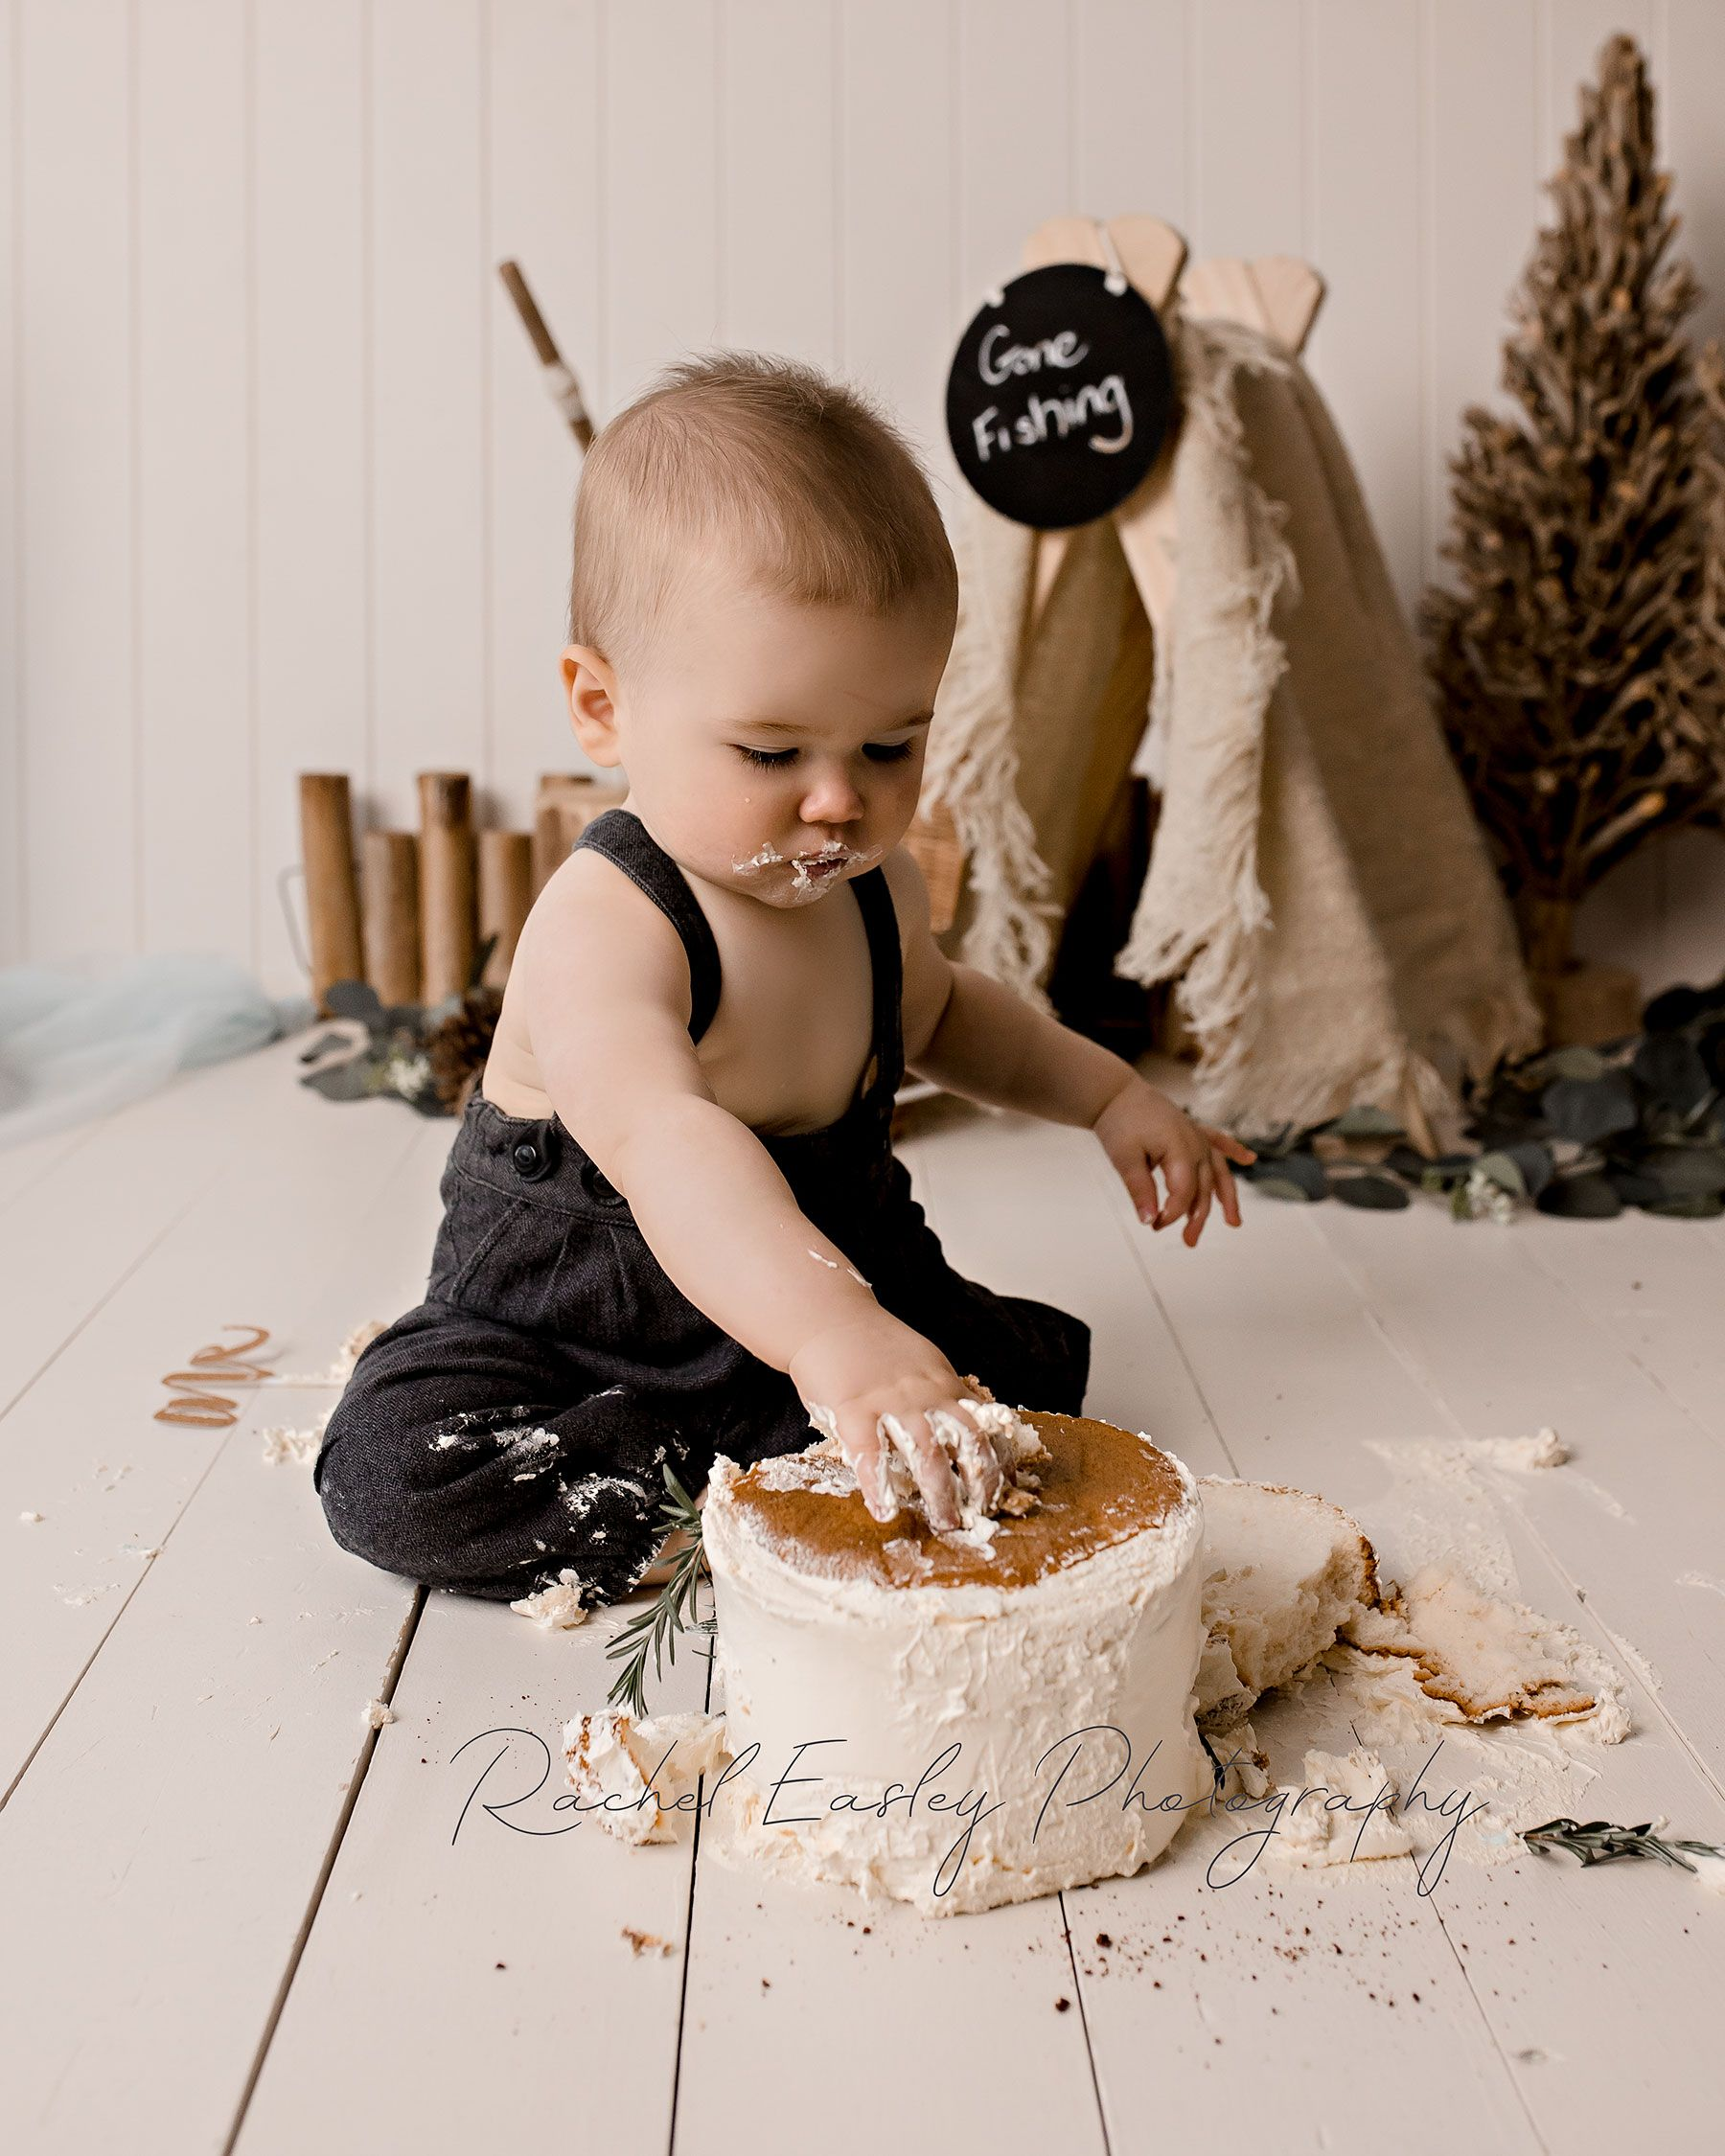 Adventure Wild One Cake Smash Brisbane Cake Smash Photography Https Onesweetcelebration Com Au Smash Cake Boy Birthday Cake Smash Baby Cake Smash